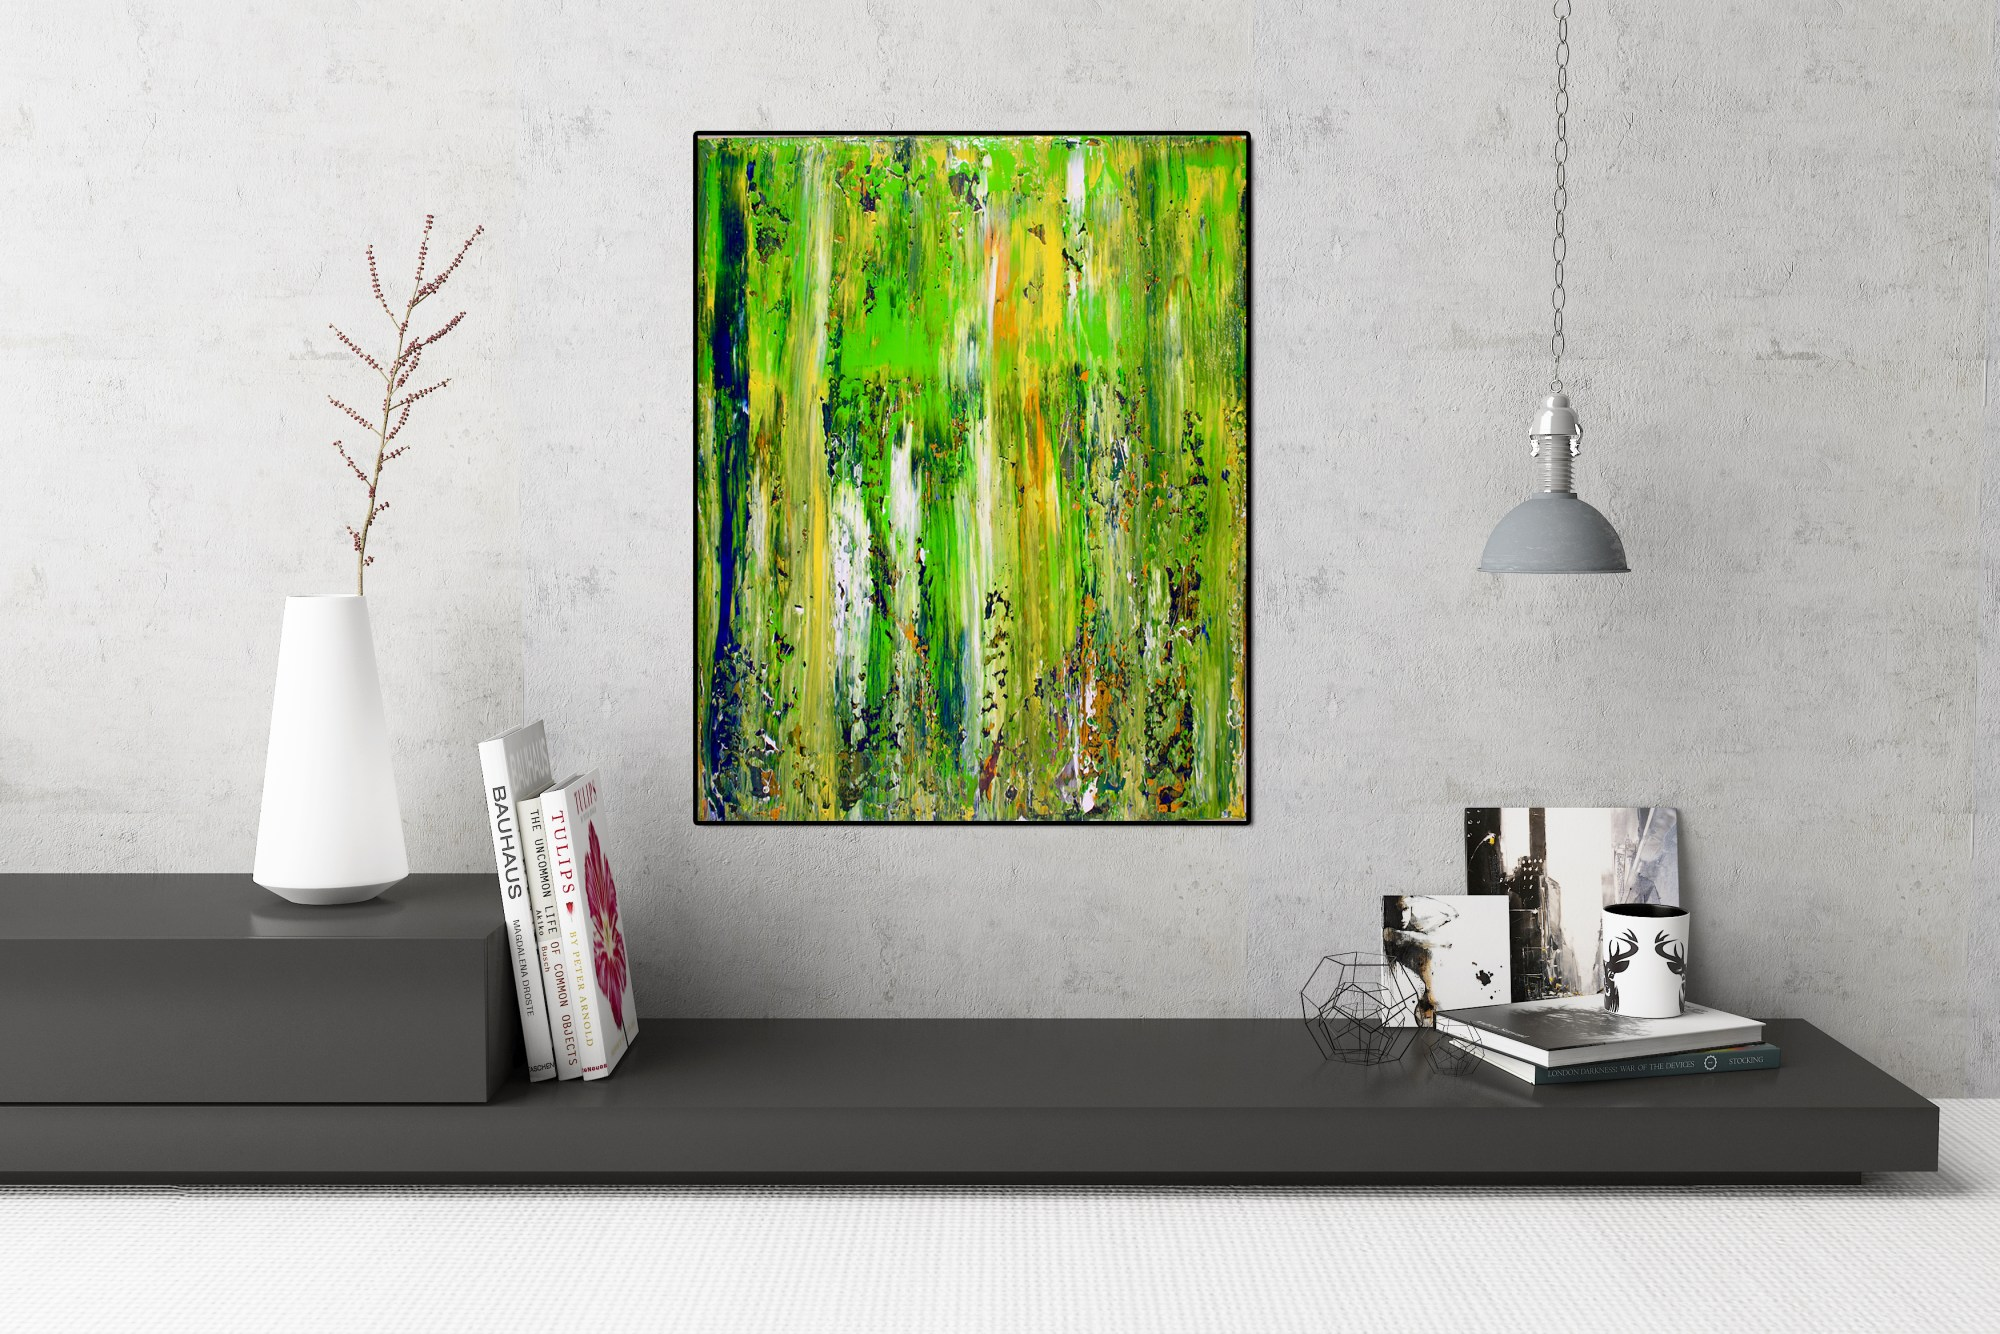 Abstract Terrain (Moss) - FRAMED + SIGNED (2015) Mixed Media painting by Nestor Toro in Los Angeles